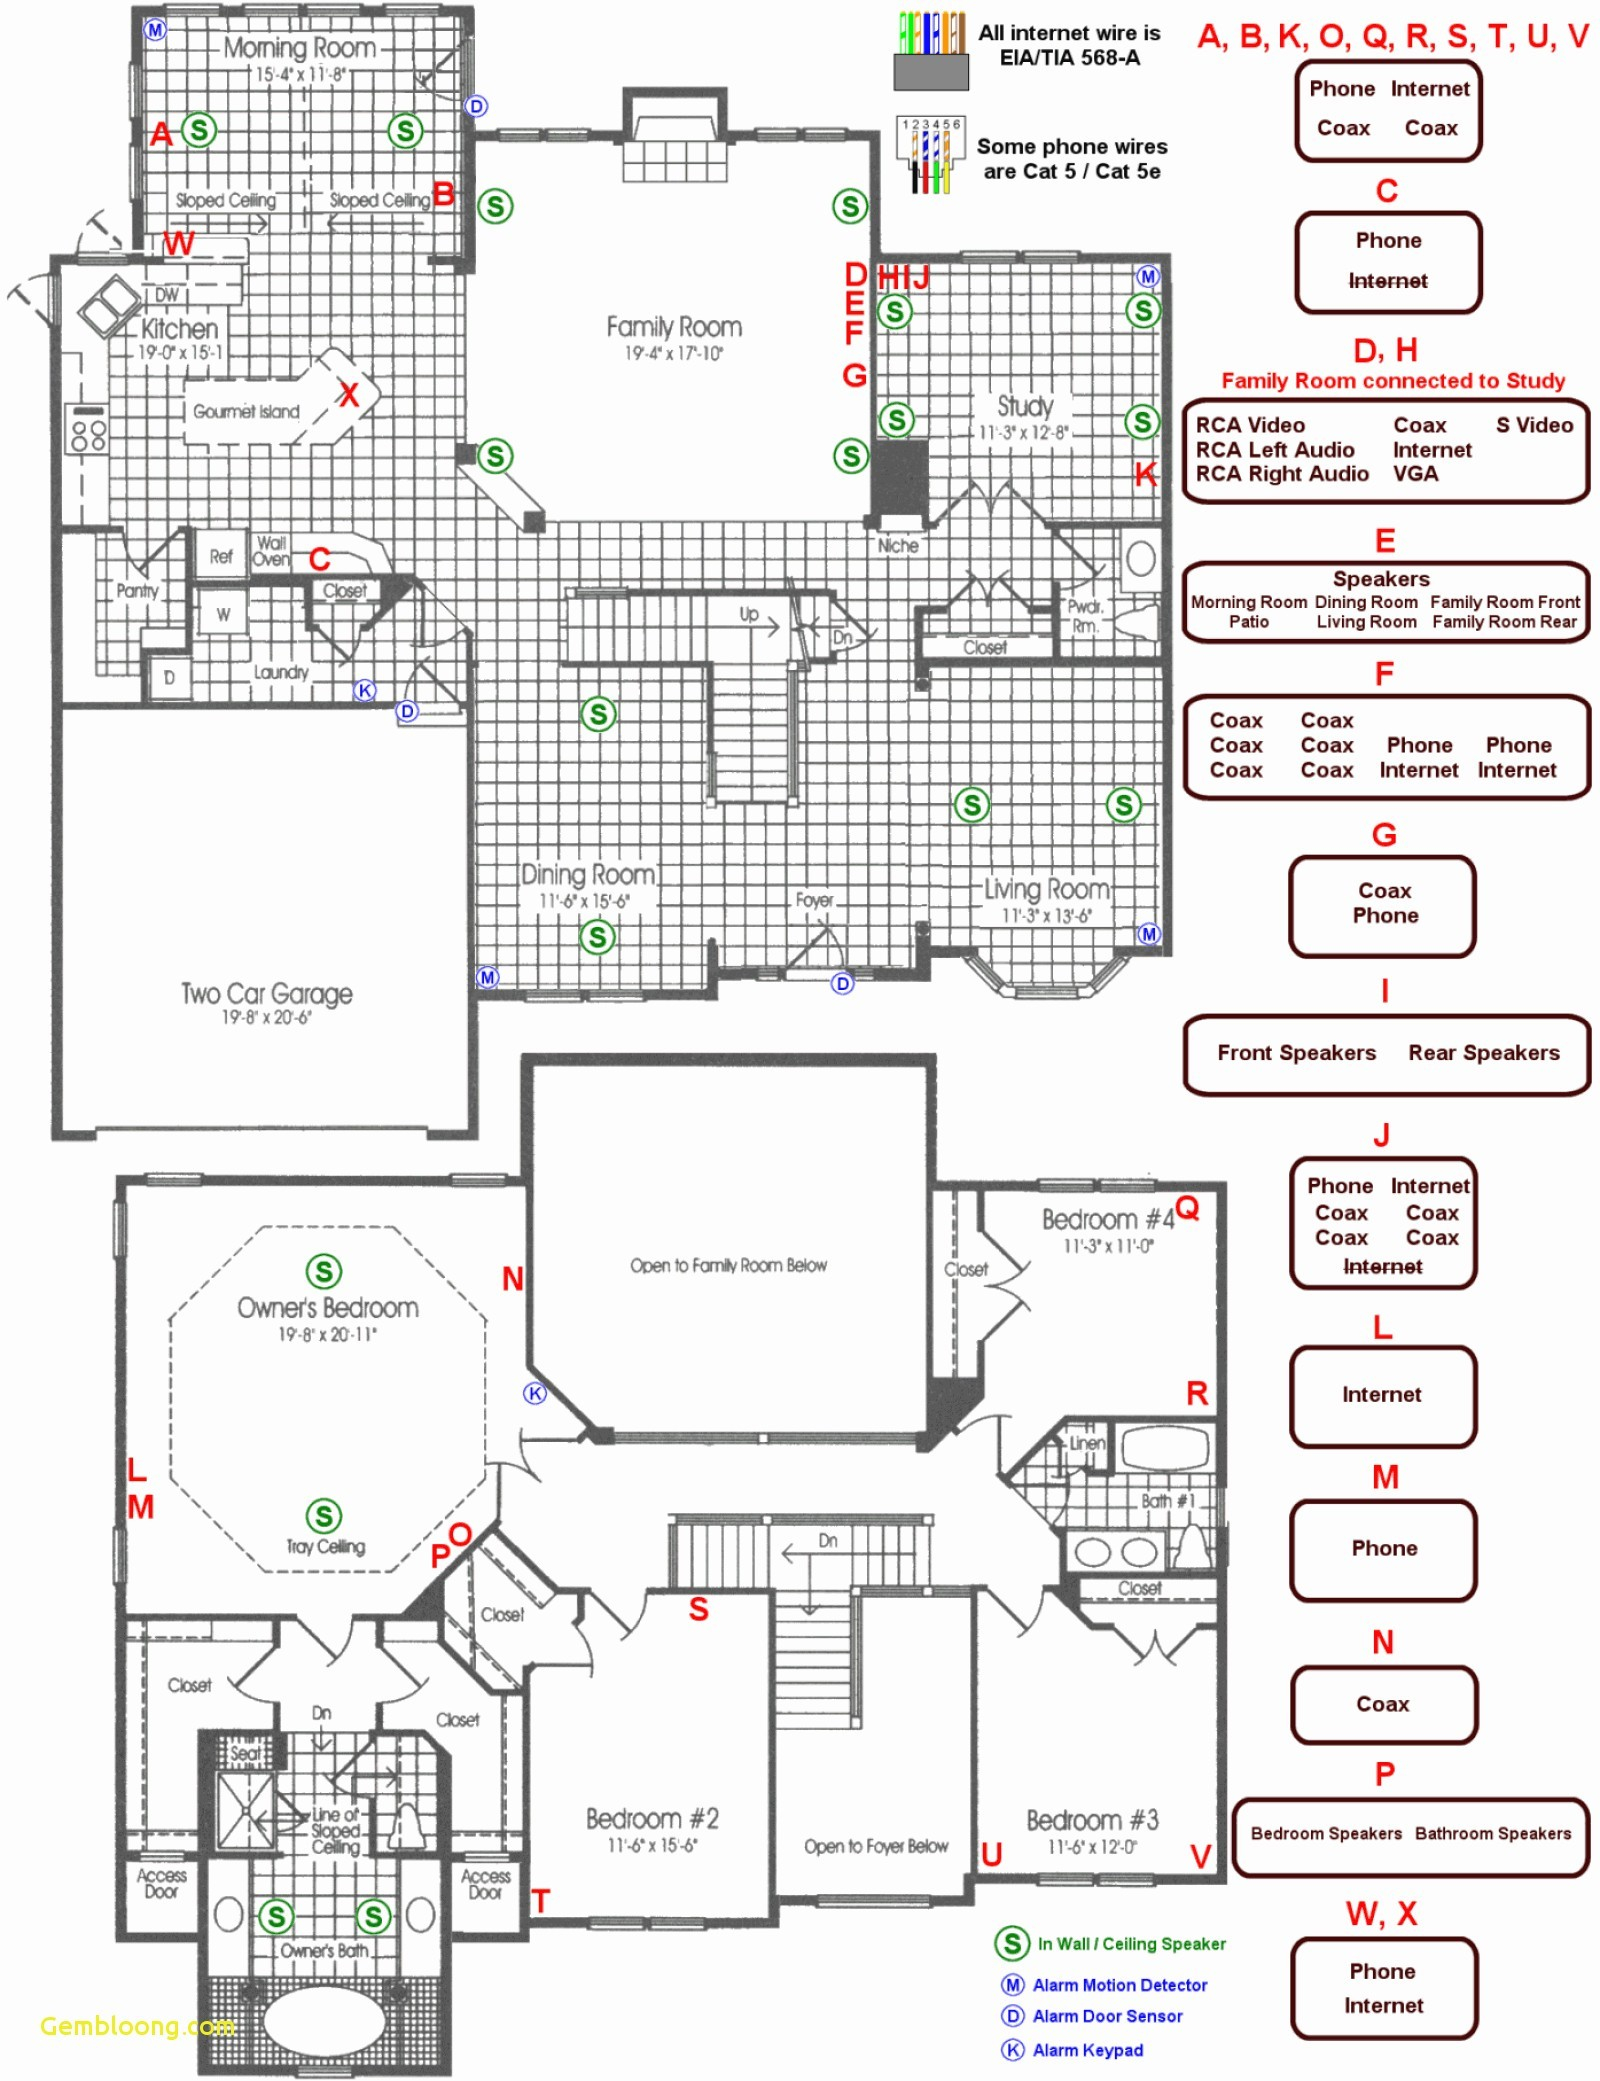 smart home wiring diagram Collection-Wiring Diagram for Smart Home Refrence Famous Smart Home Wiring Diagram Crest Electrical Circuit Diagram 14-b